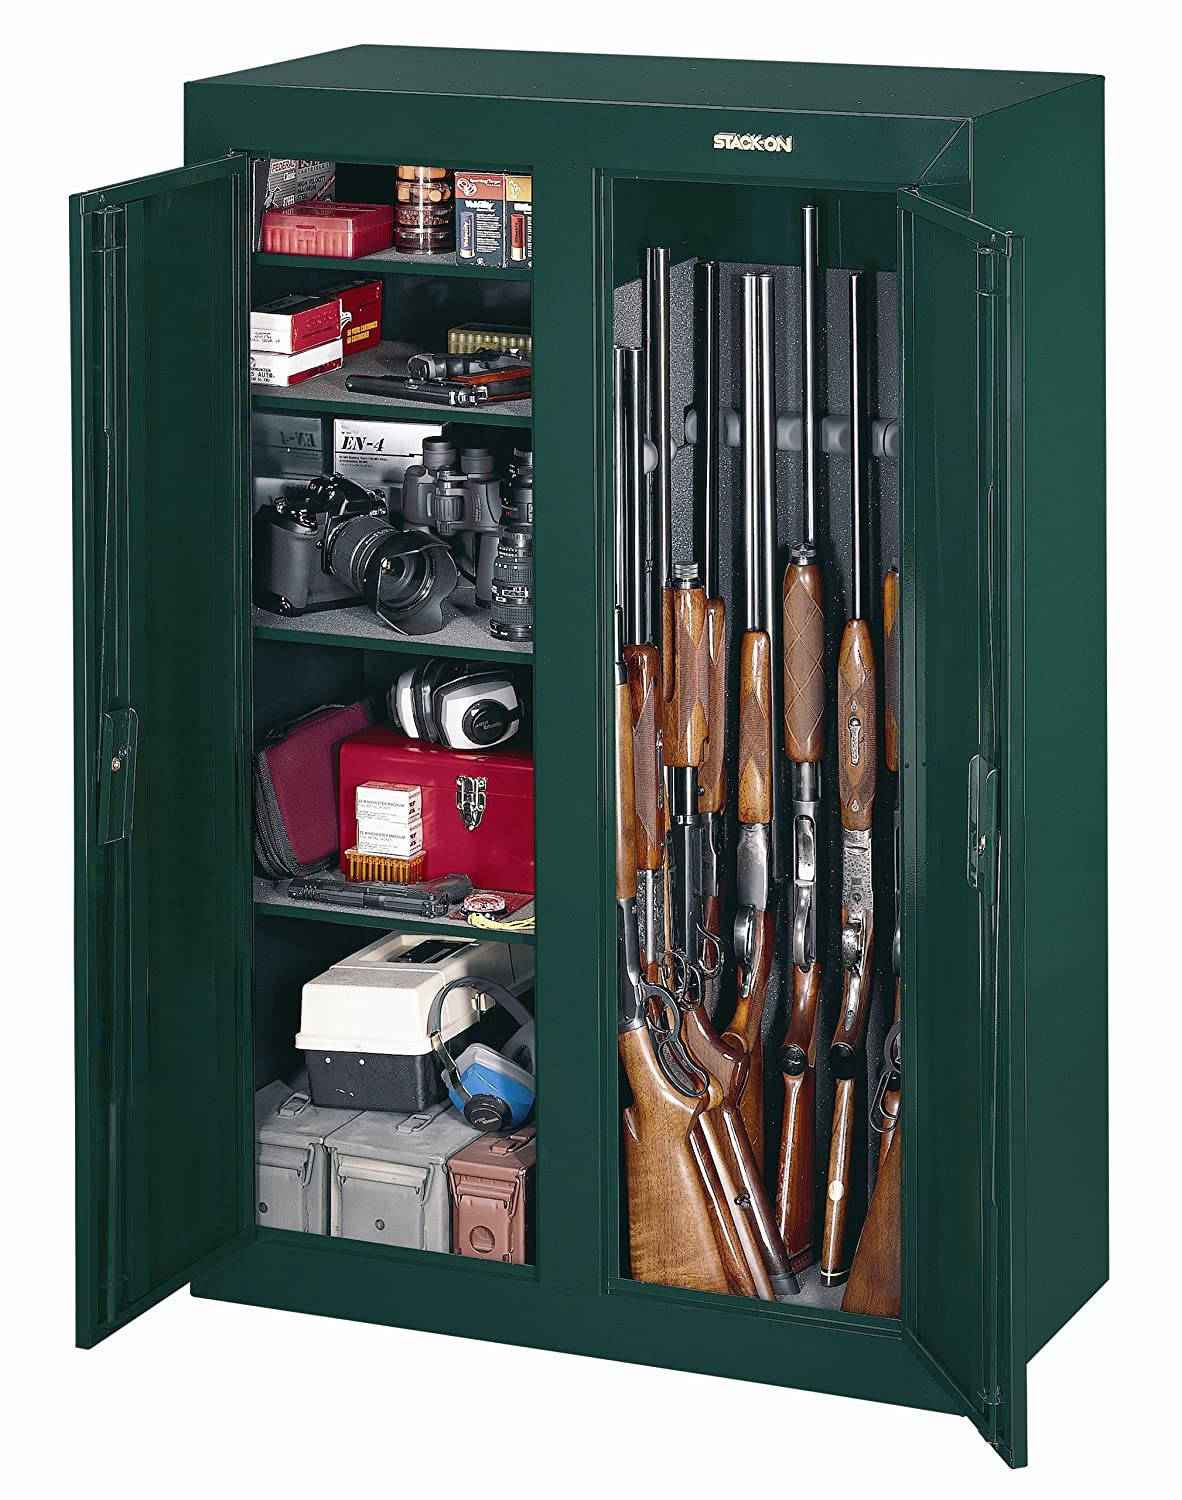 Amazon.com: Stack On GCDG 9216 16 Gun Convertible Double Door Steel Security  Cabinet: Home Improvement